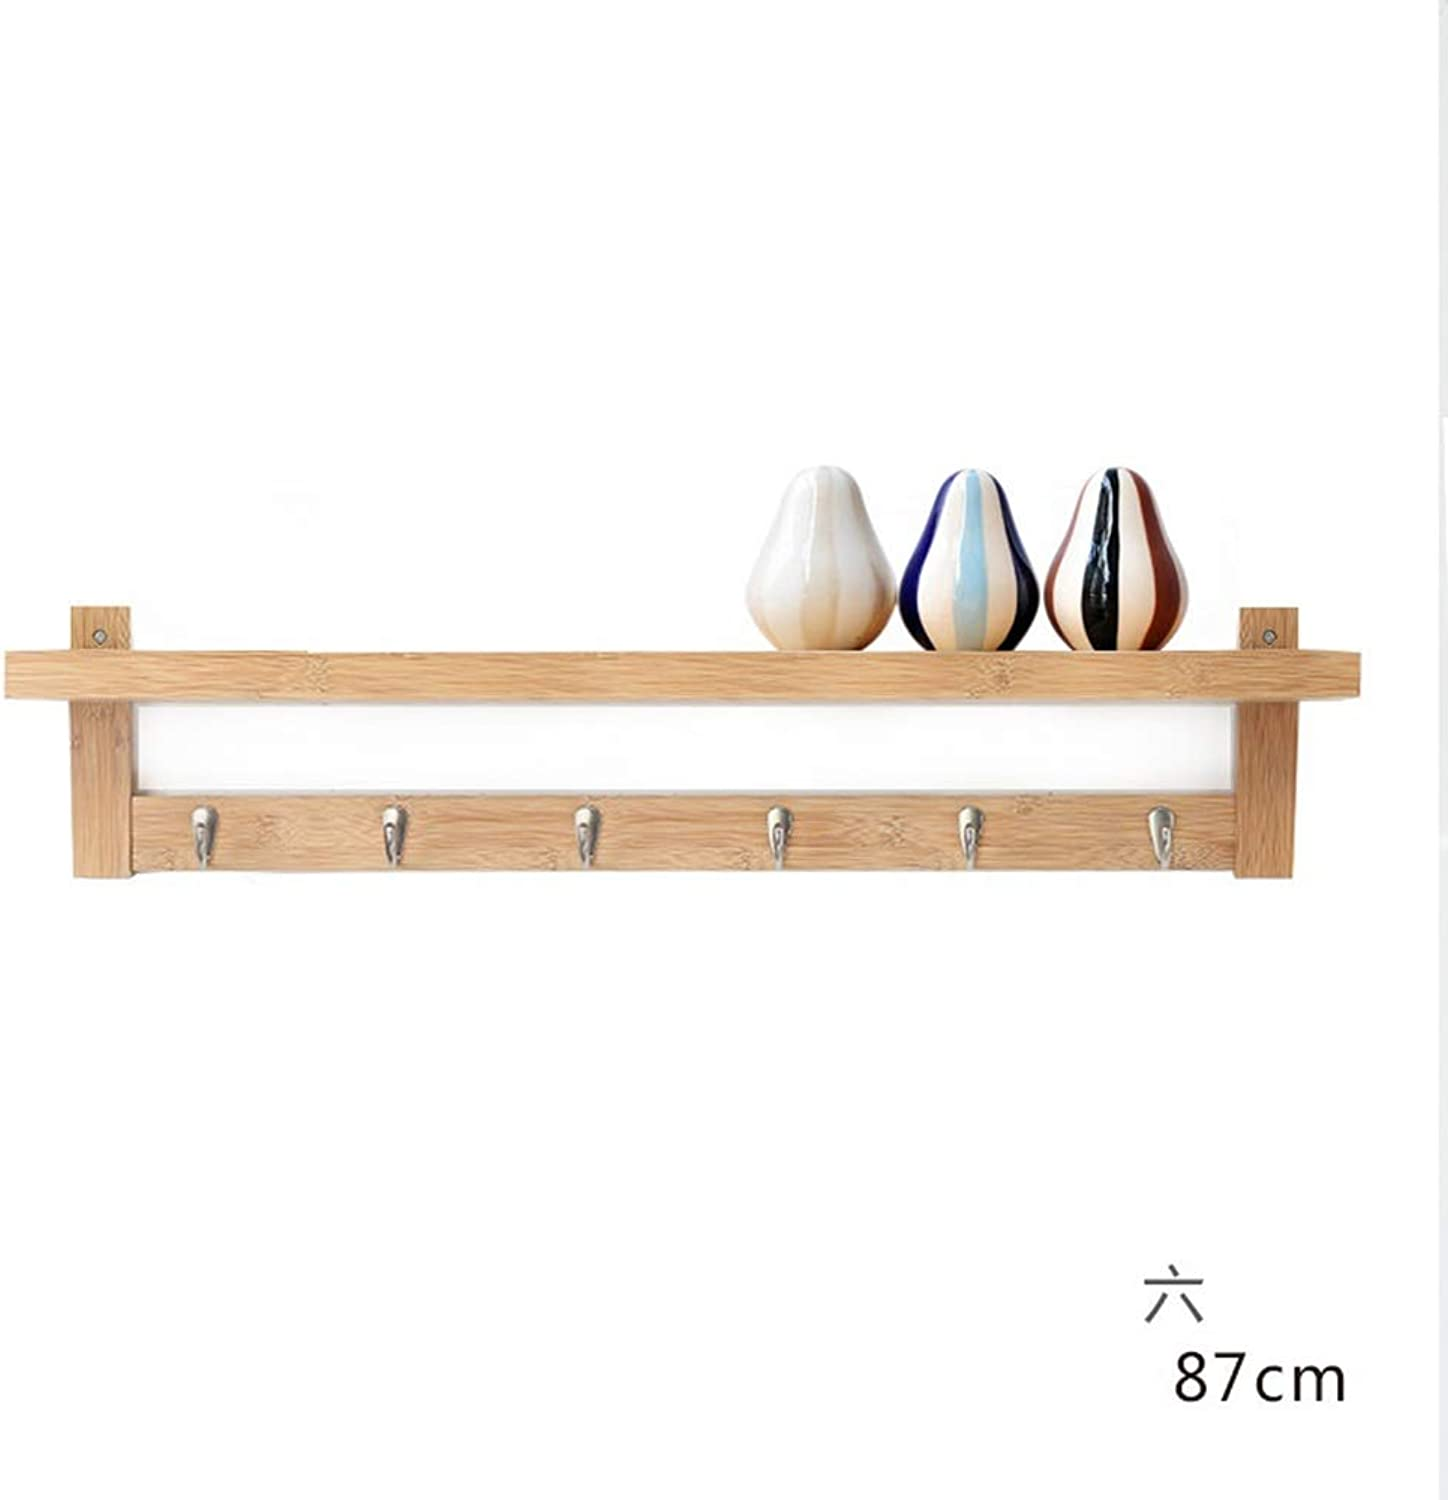 Tingting-Wall Mounted Coat Rack Bamboo Solid Wood Bedroom Living Room Kitchen Hall Storage Multi-Hook Shelf (color   Wood, Size   6)